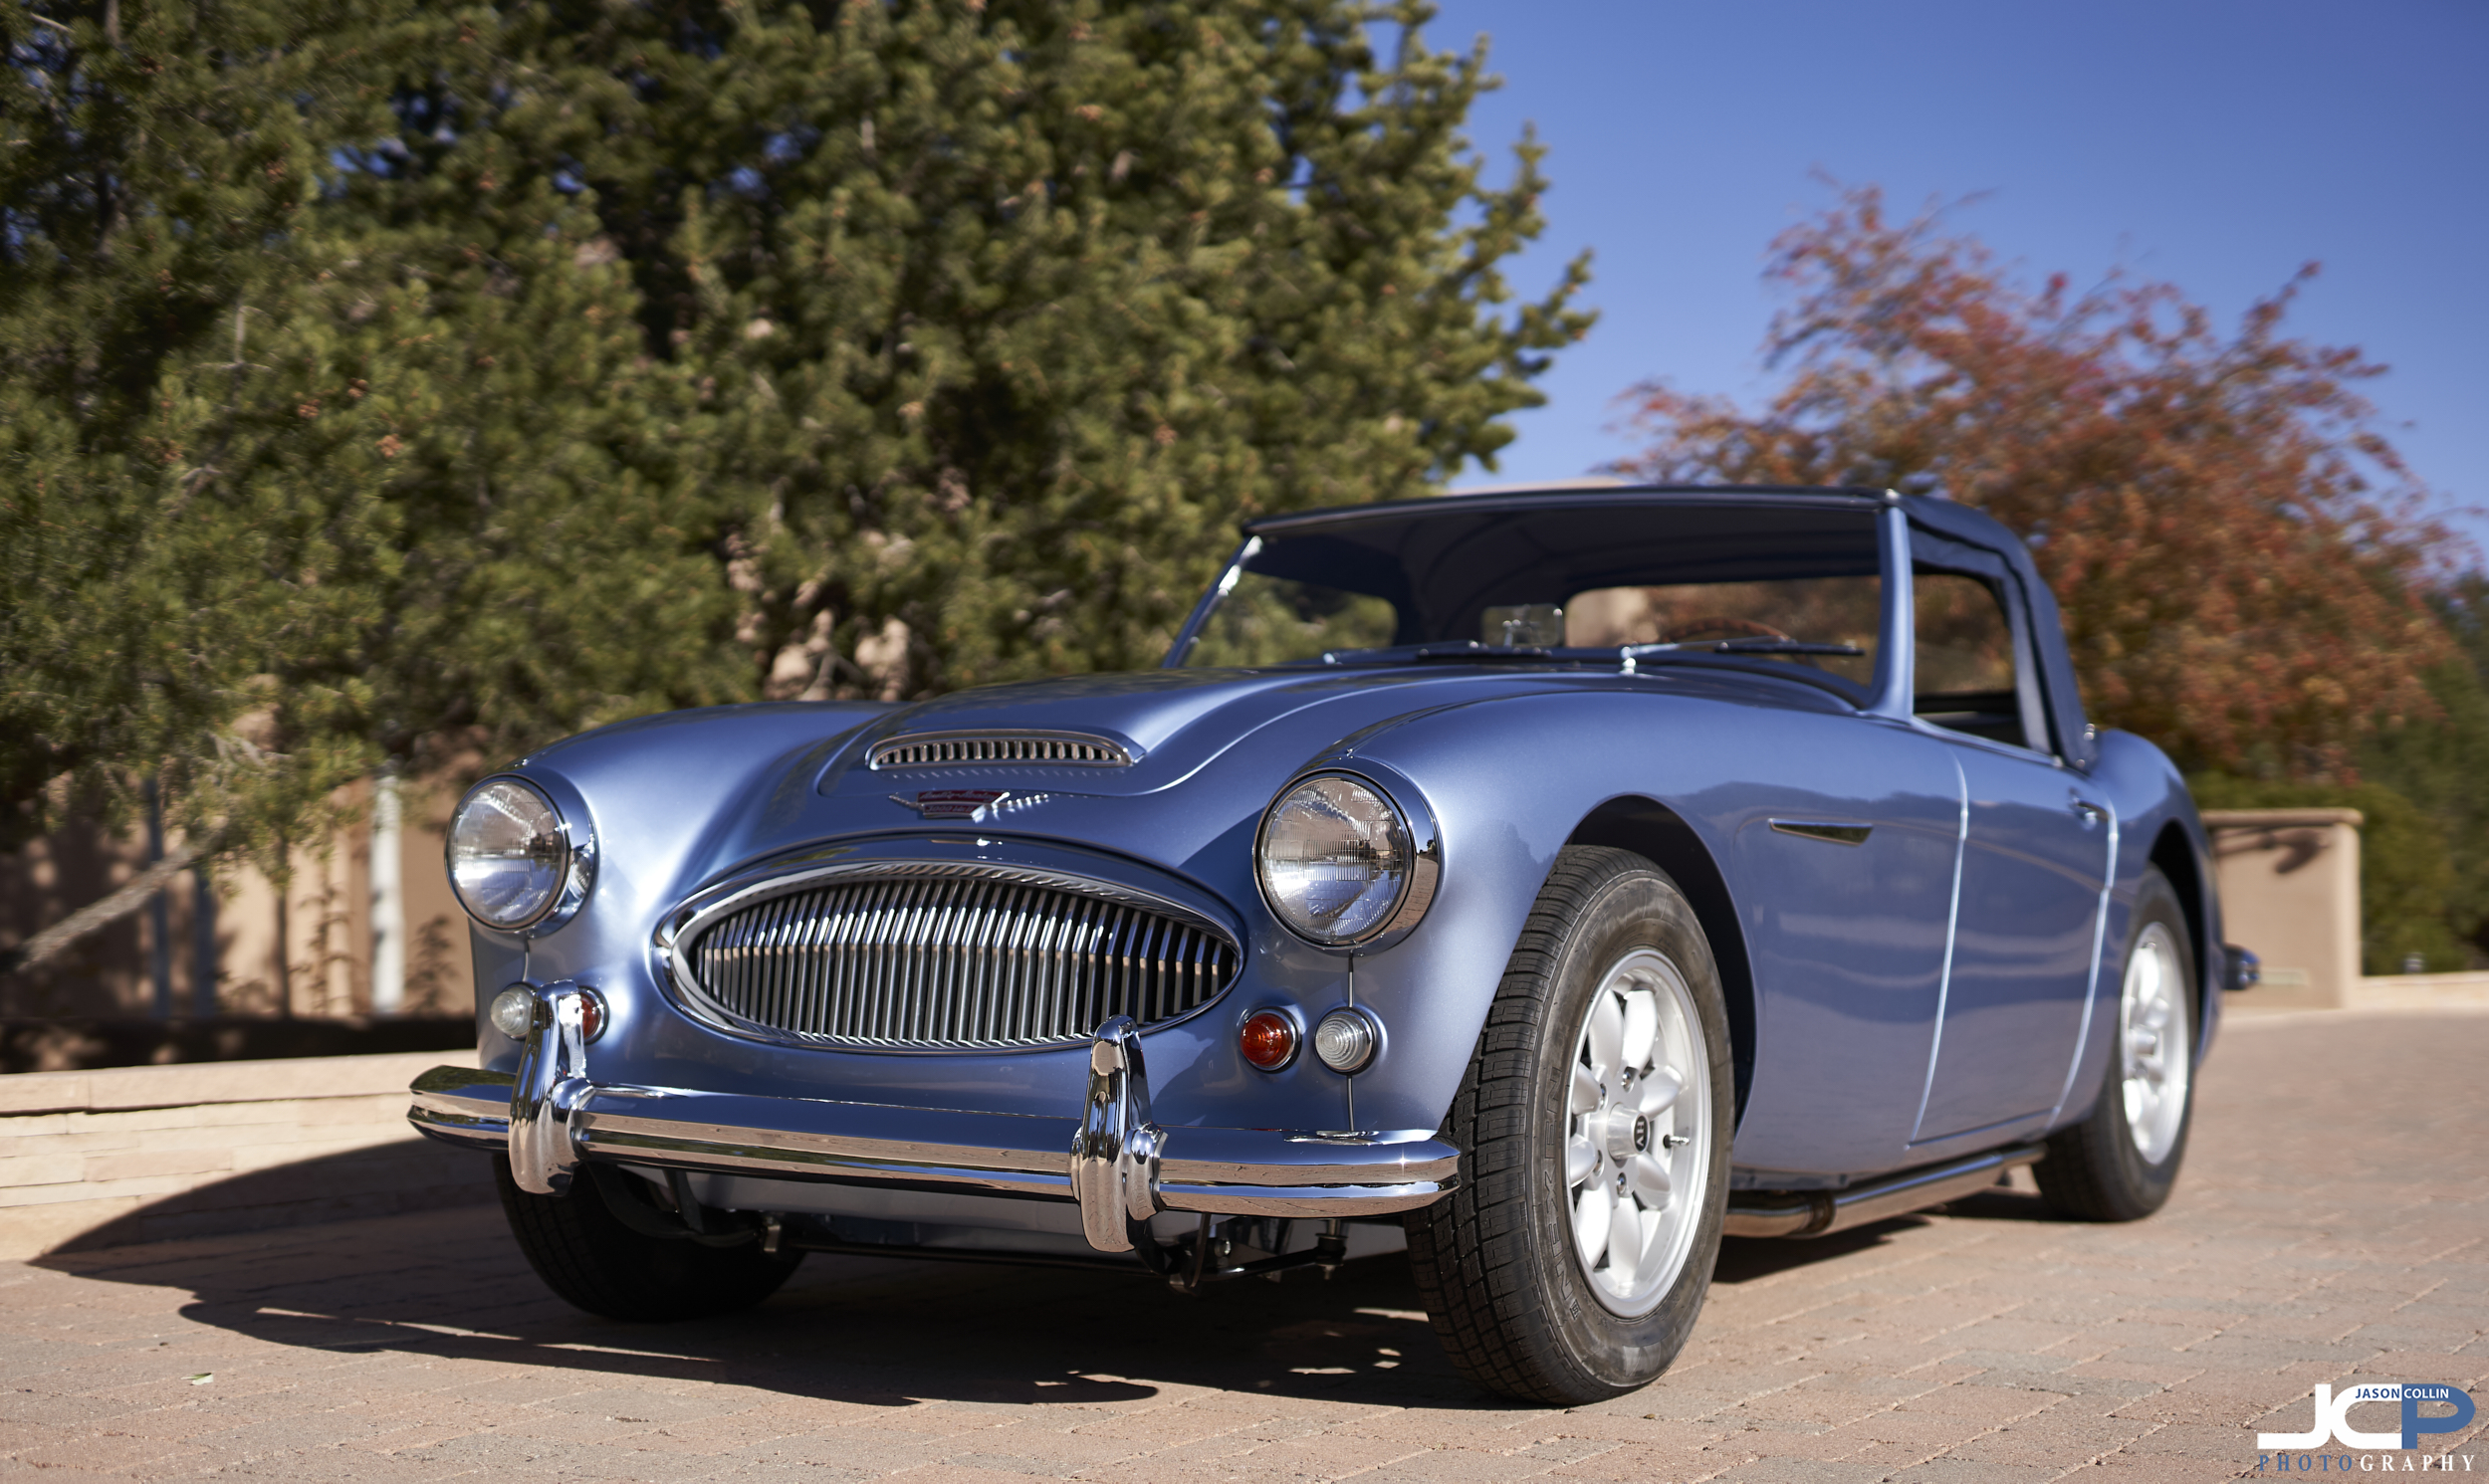 Austin Healey 3000 Mkii Professional Car Auction Photography In Santa Fe New Mexico Jason Collin Photography